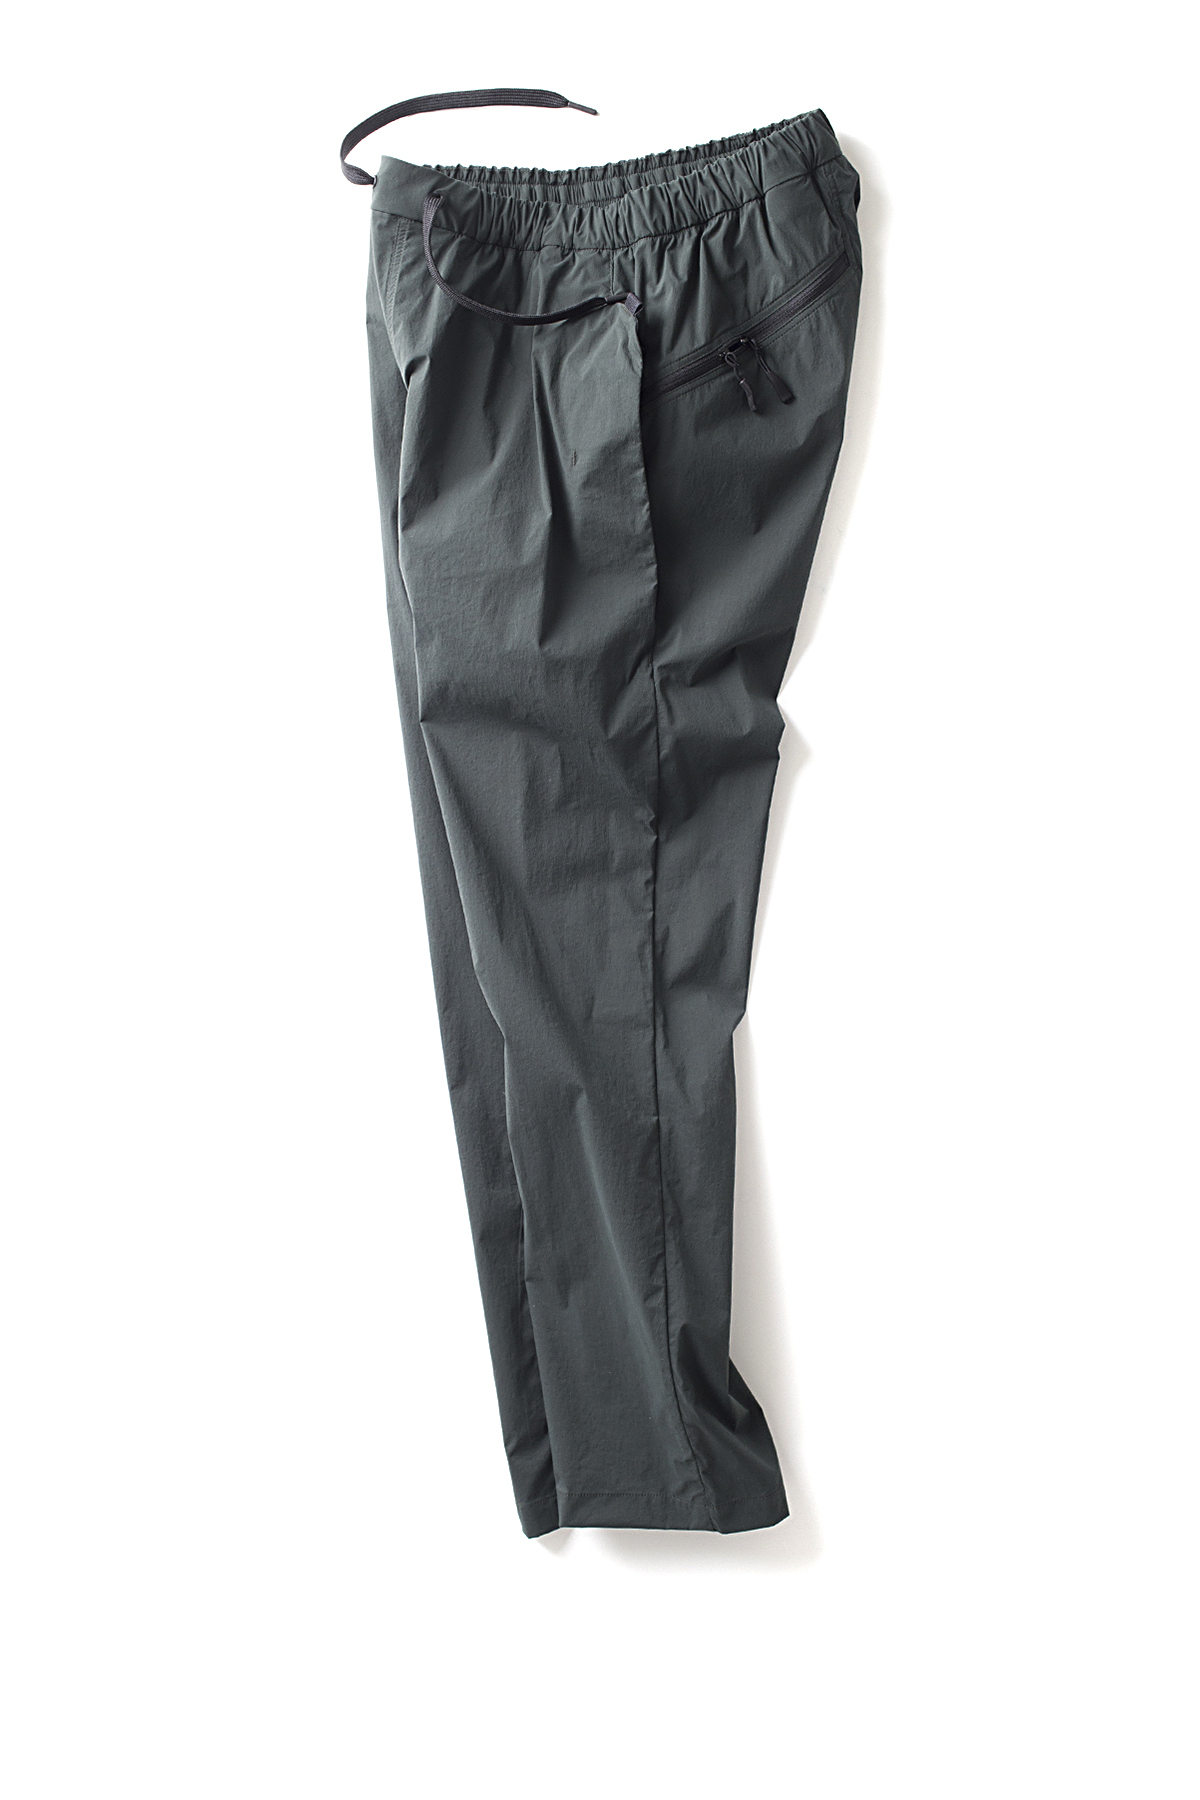 alk phenix : Crank Pants (Dark Green)